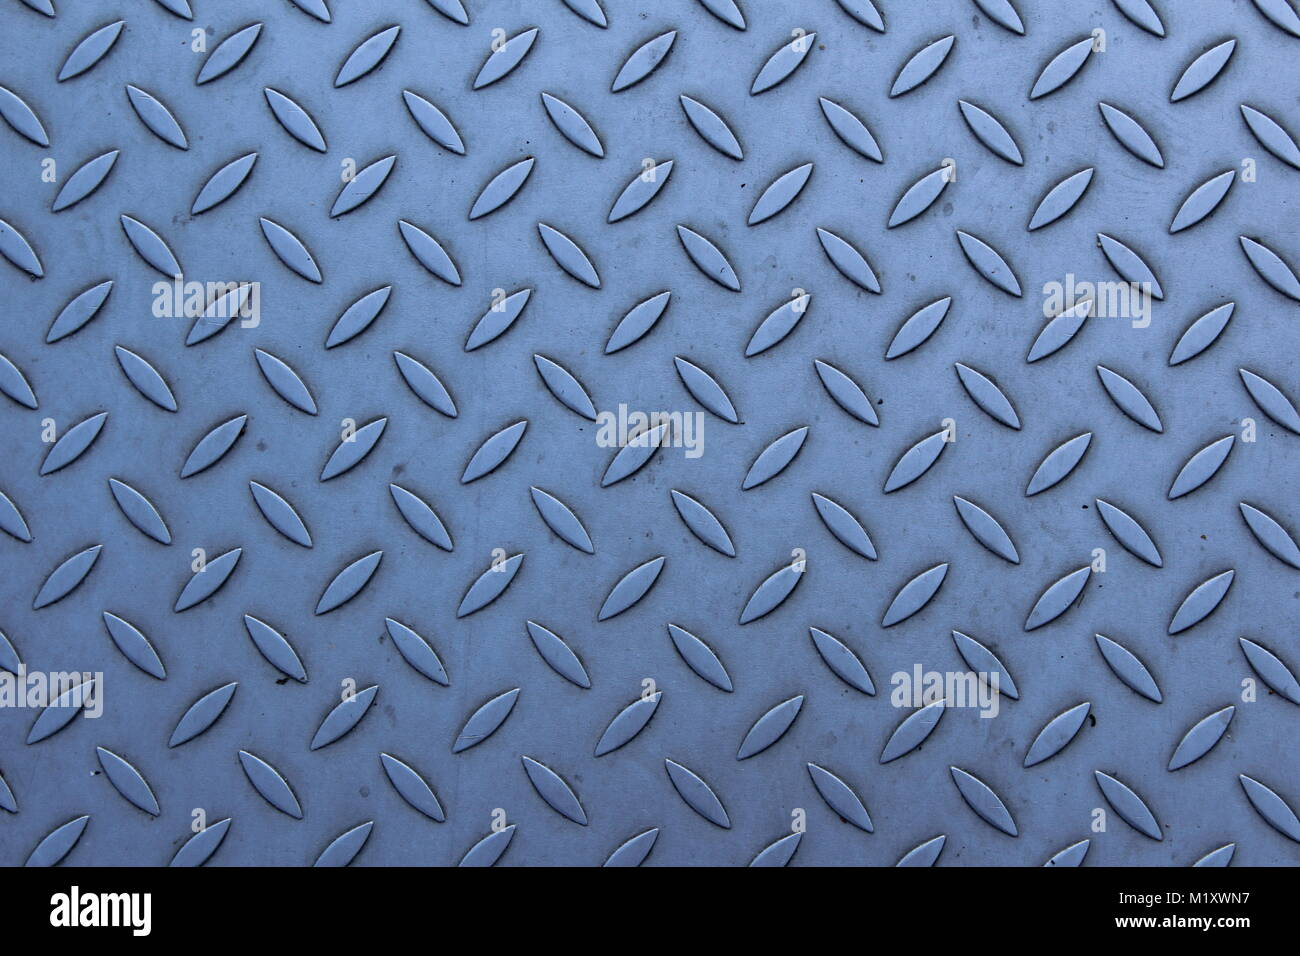 diamond plate as a background texture - Stock Image